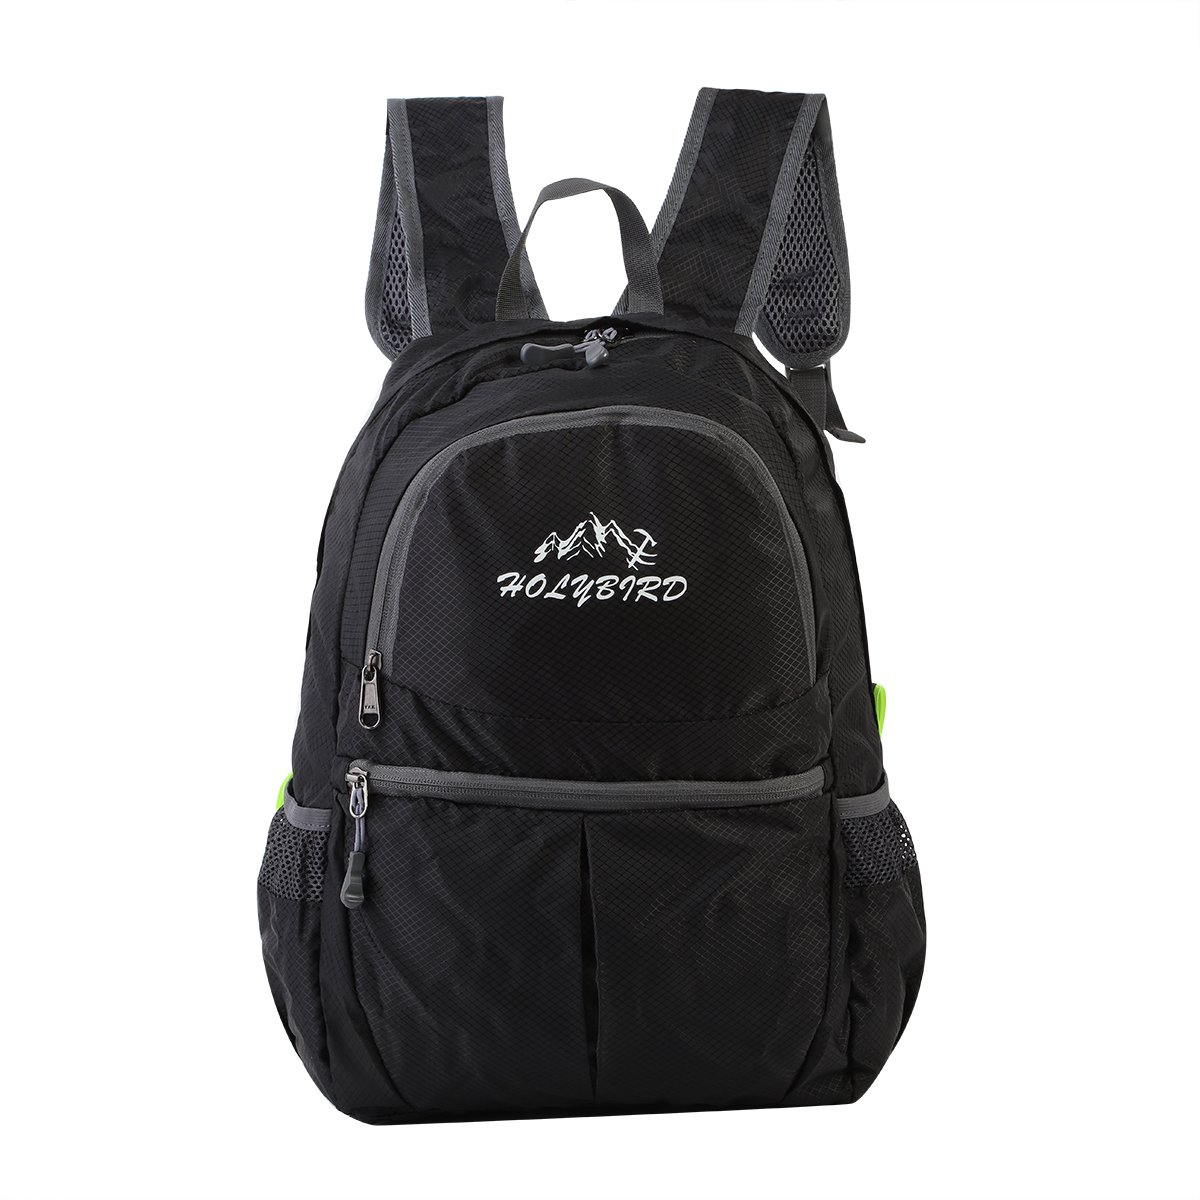 Foldable Lightweight Backpack Travel Casual Outdoor Bag Waterproof for Sport Travel Hiking School